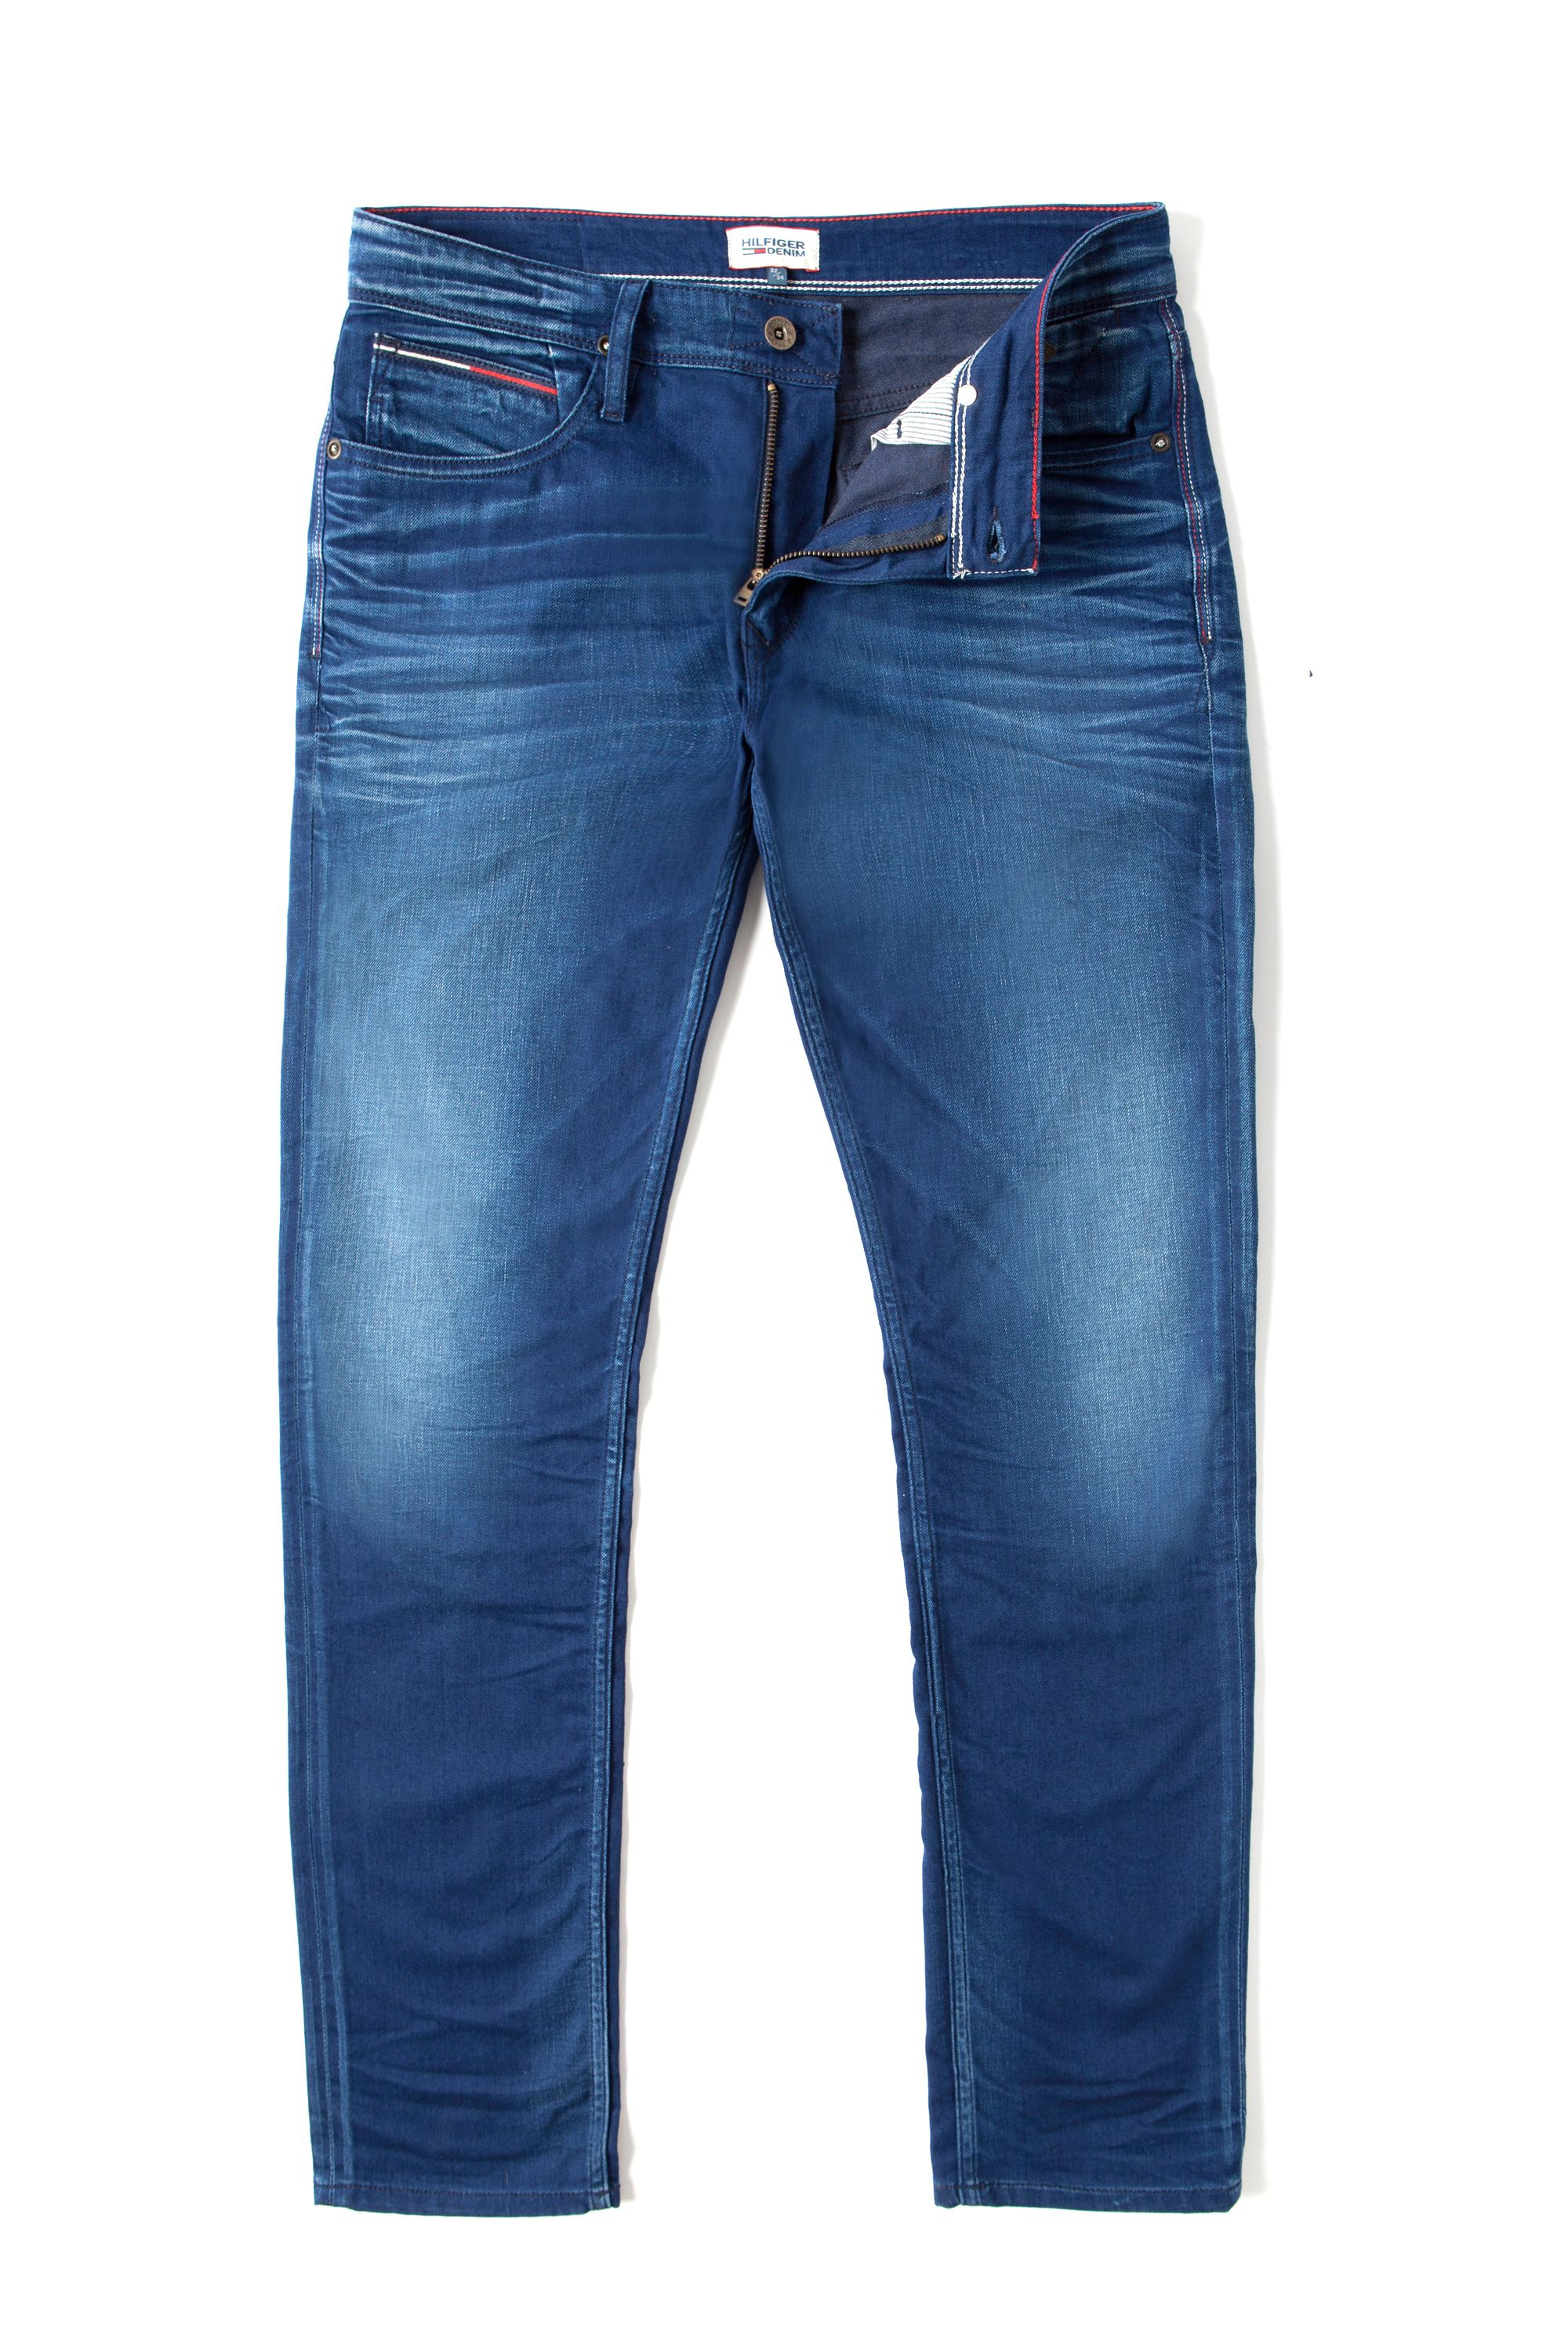 Scanton slim fit jean